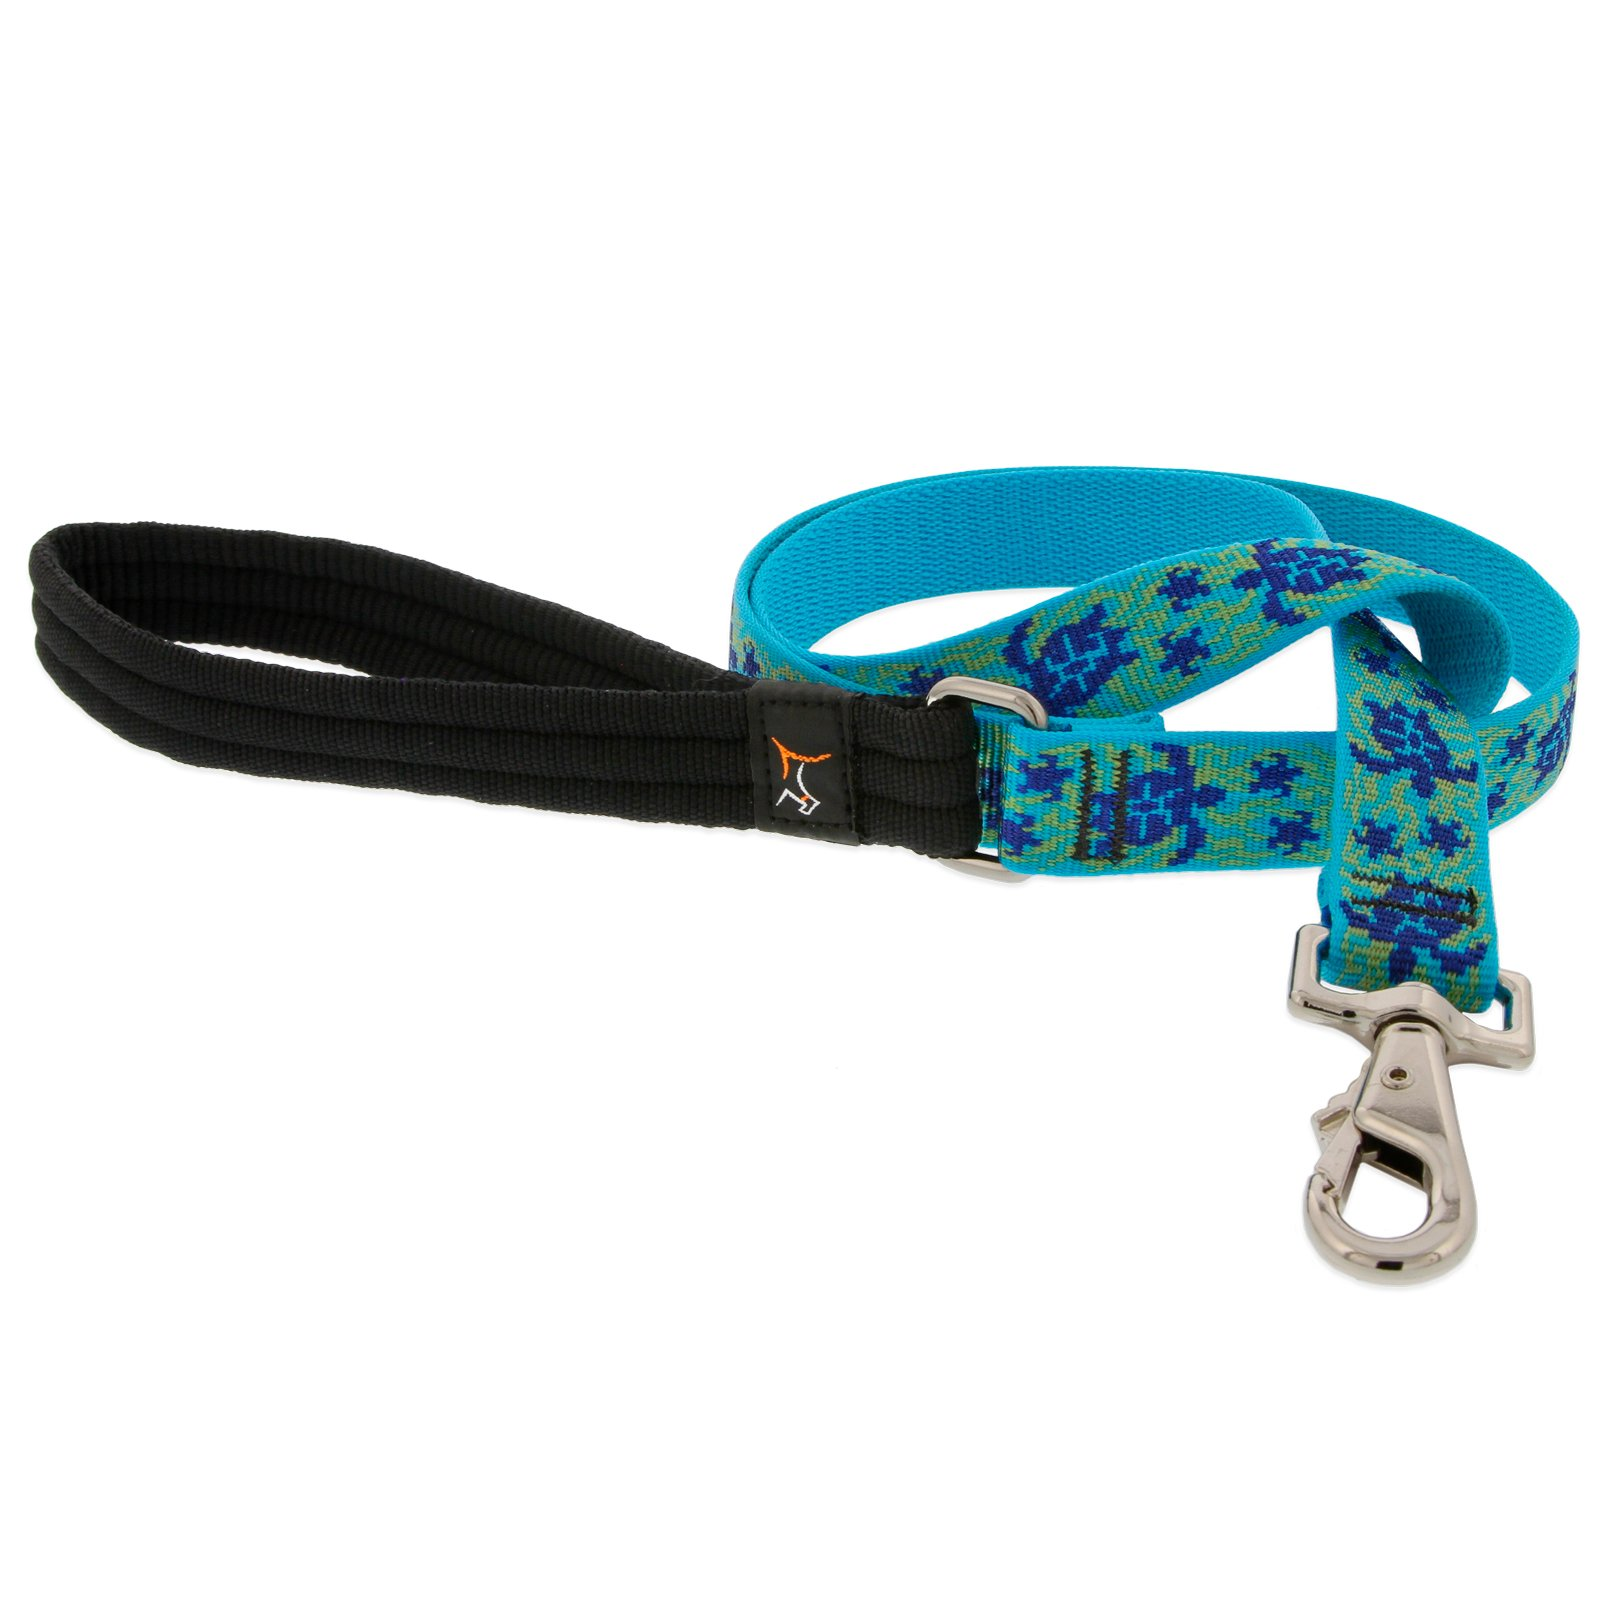 LupinePet Originals 1'' Turtle Reef 6-foot Padded Handle Leash for Medium and Larger Dogs